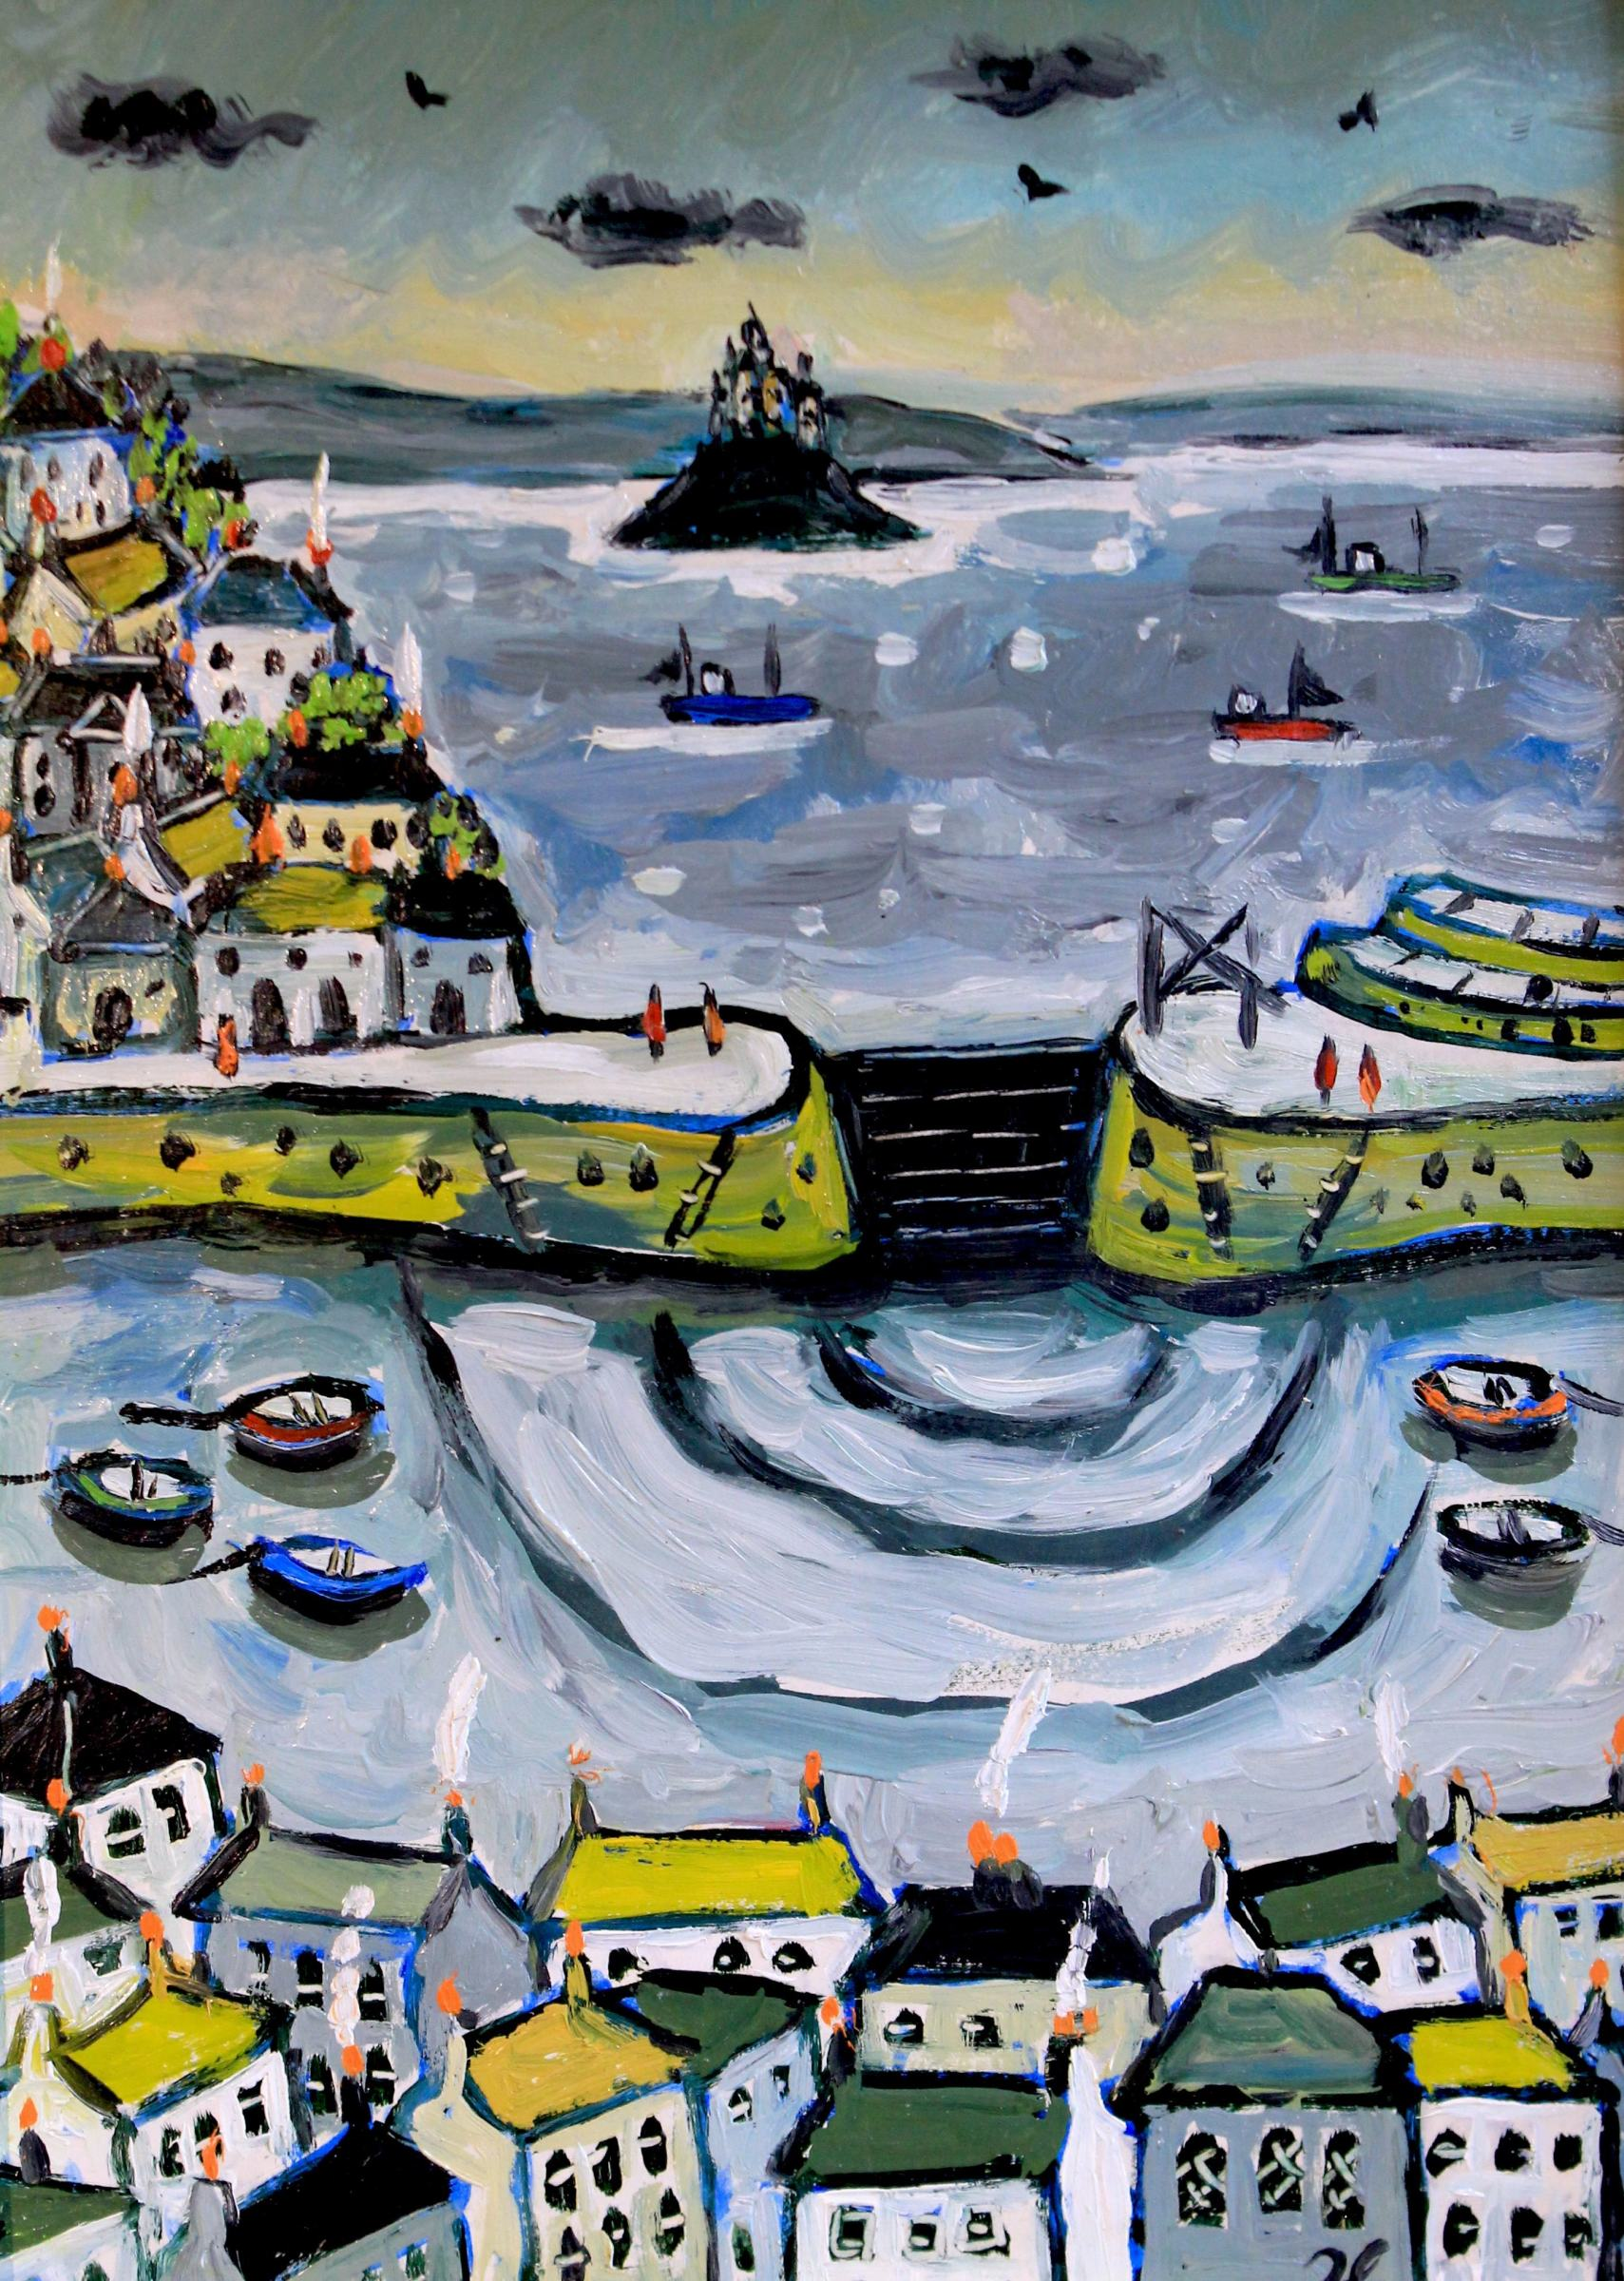 "<span class=""link fancybox-details-link""><a href=""/artists/140-joan-gilchrest/works/5203-joan-gilchrest-mousehole-in-winter/"">View Detail Page</a></span><div class=""artist""><strong>Joan Gilchrest</strong></div> 1918–2008 <div class=""title""><em>Mousehole in Winter</em></div> <div class=""signed_and_dated"">initialled 'JG' lower right</div> <div class=""medium"">oil on card</div> <div class=""dimensions"">h 18.7 x w 14 cm<br /> 7 3/8 x 5 1/2 in</div><div class=""copyright_line"">© The Estate of Joan Gilchrest</div>"